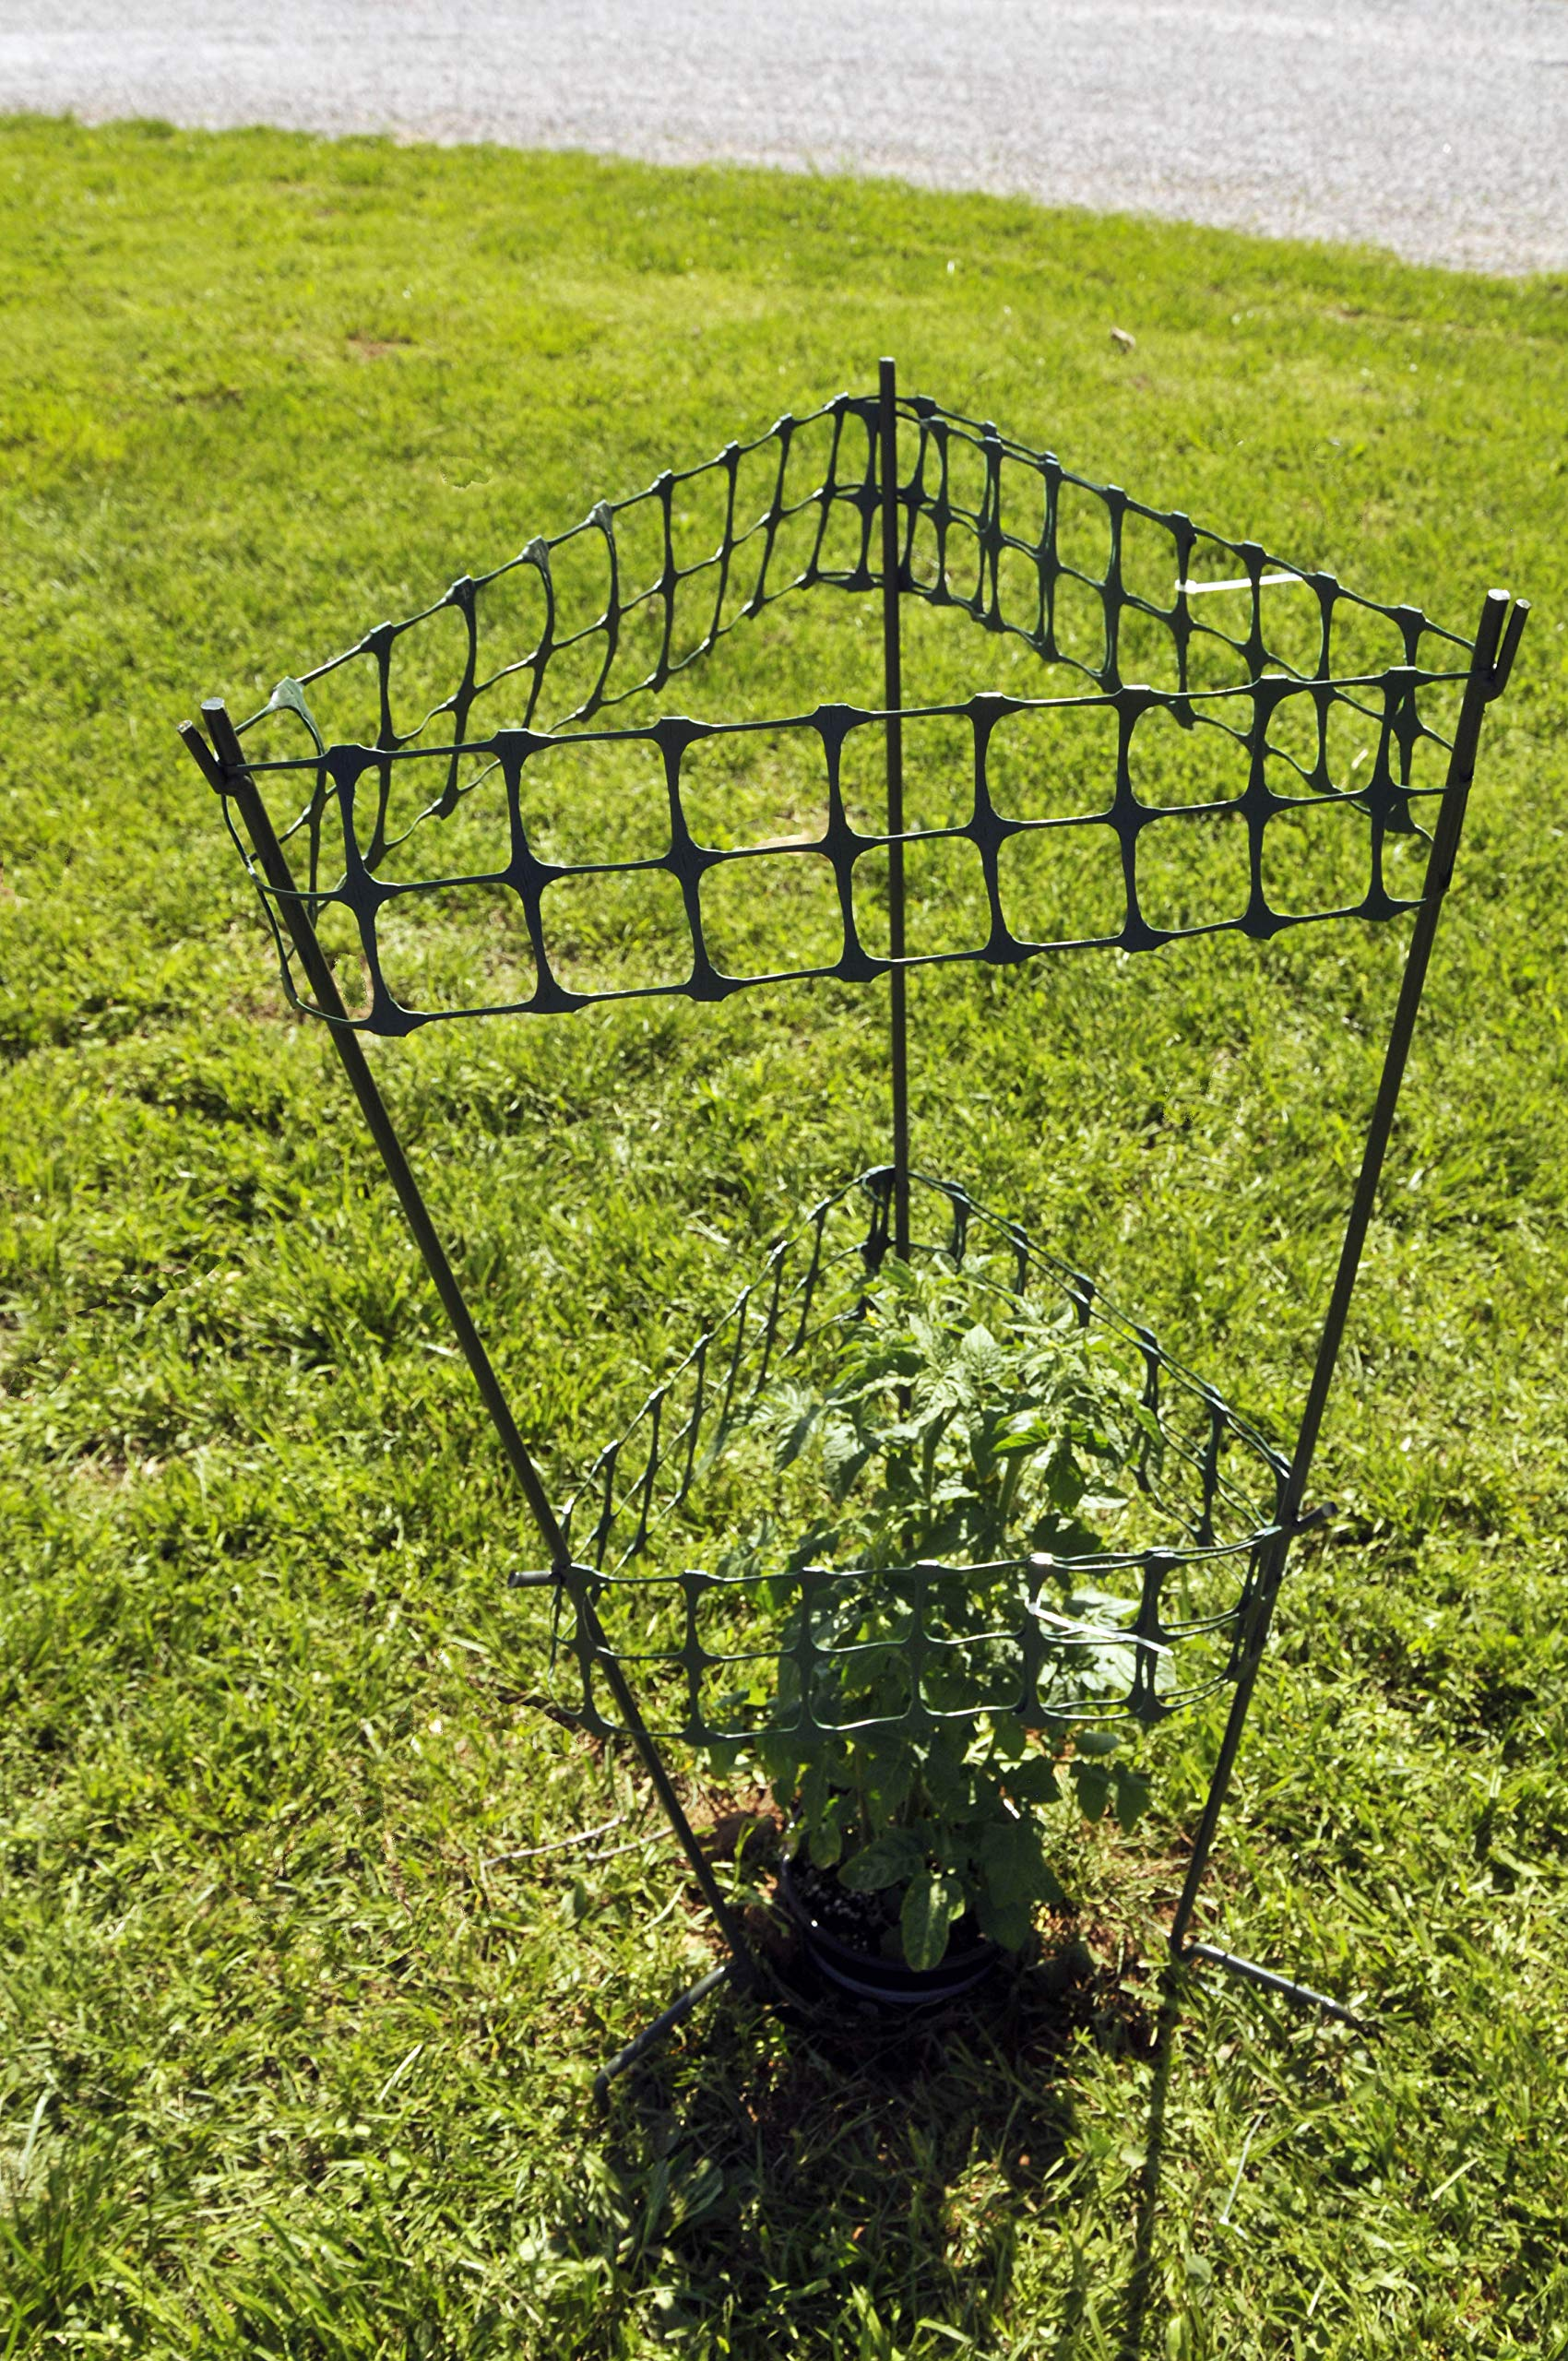 One Step Fencing Tomato Cages 4 Cages, Adjustable, Holds Up to Heavy Tomatoes, Wind and Rain